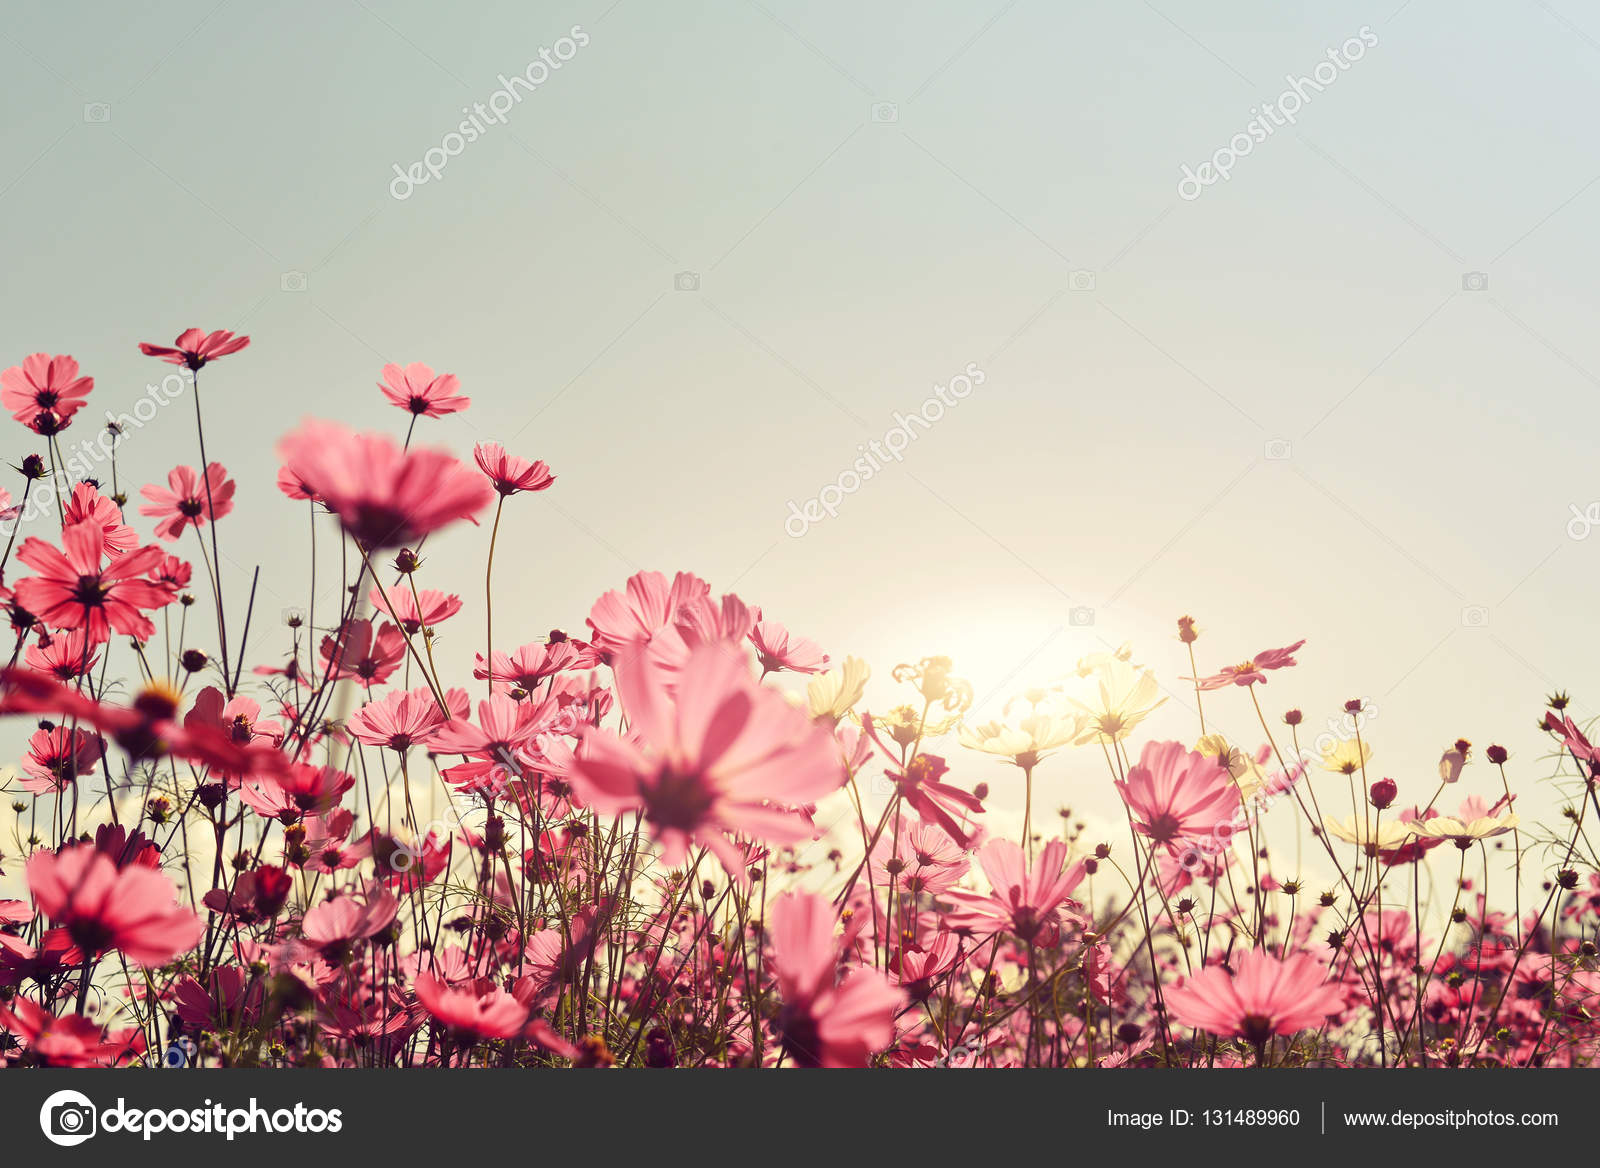 Pink of cosmos flower field stock photo jakkapan 131489960 pink of cosmos flower field stock photo mightylinksfo